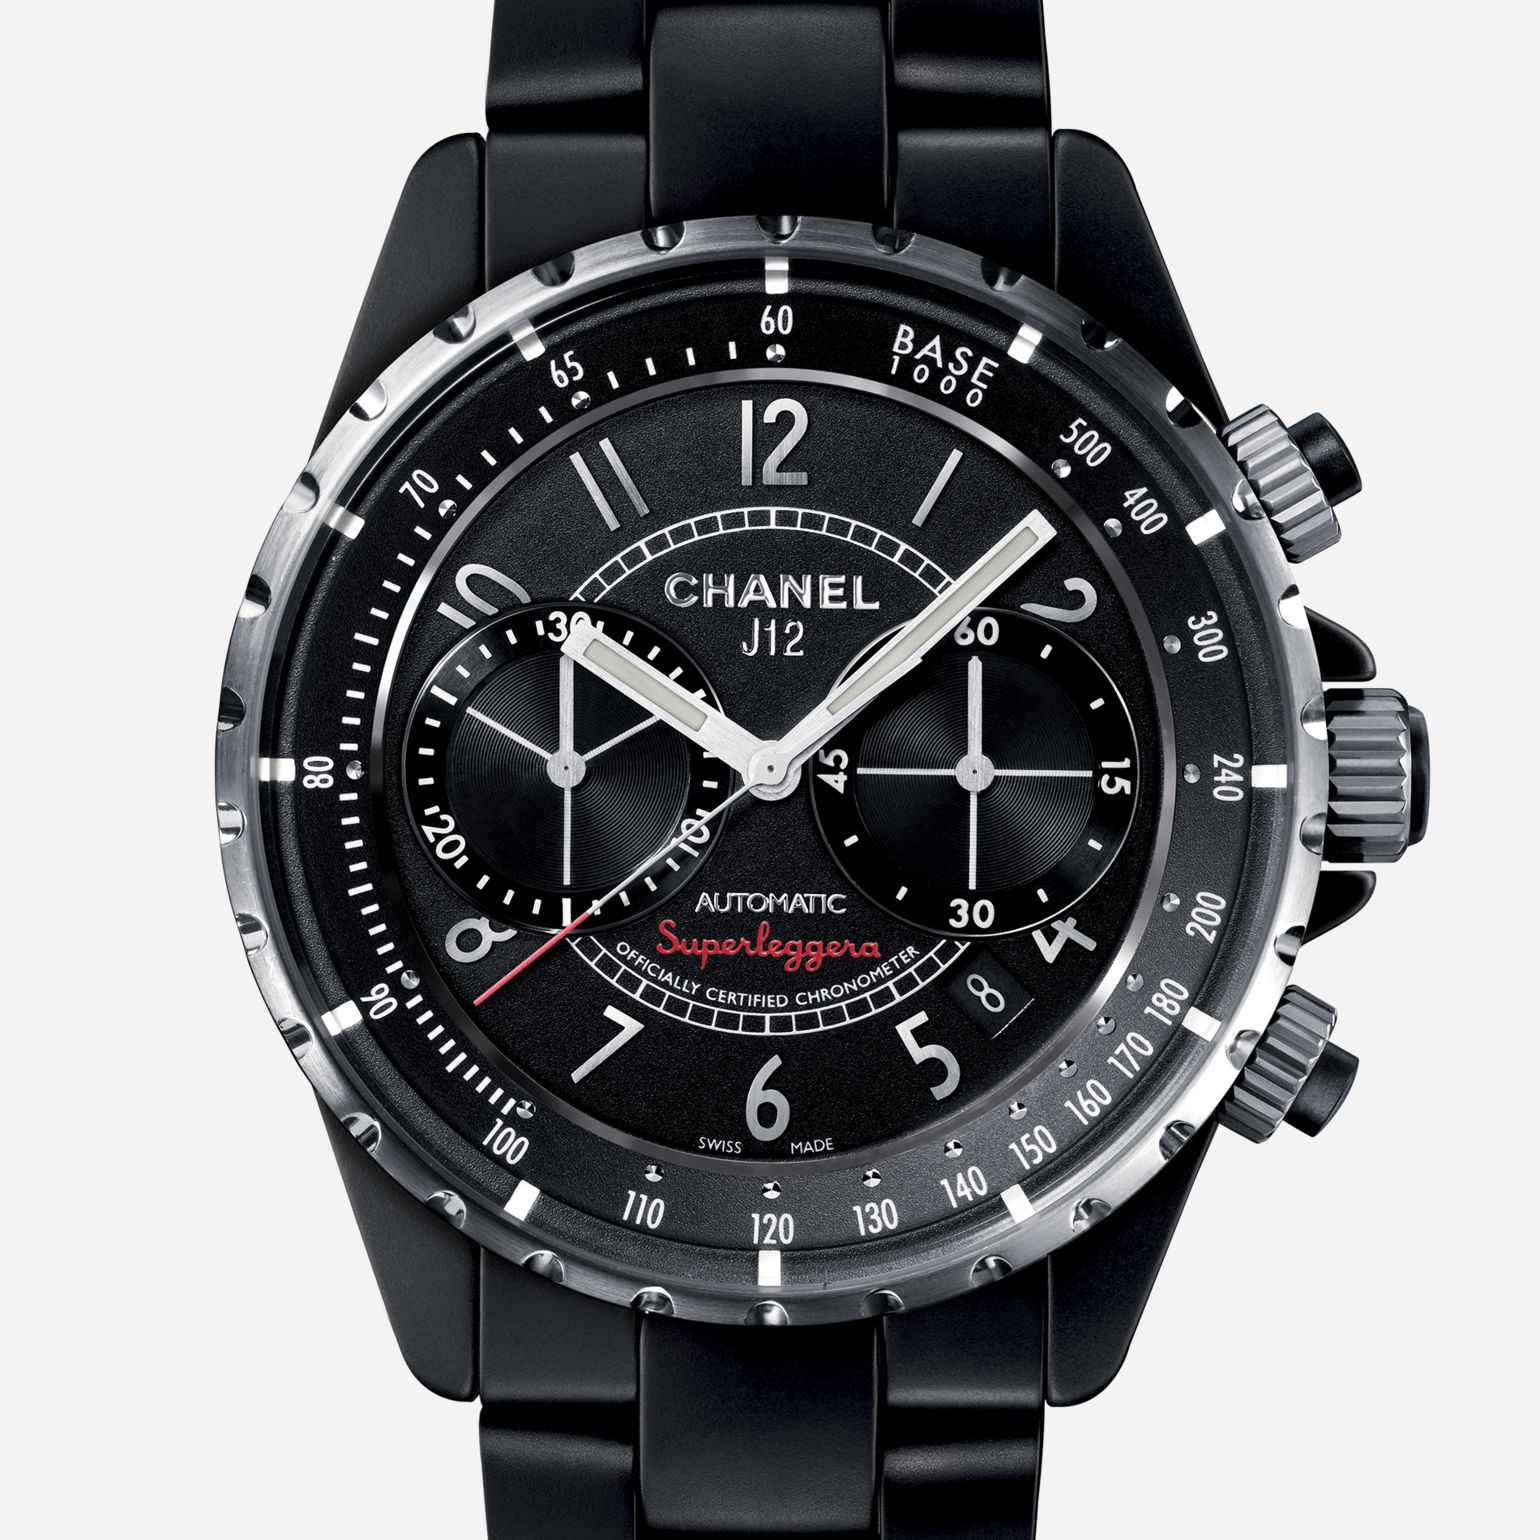 J12 CHRONOGRAPHE SUPERLEGGERA Watch Matte black ceramic and steel